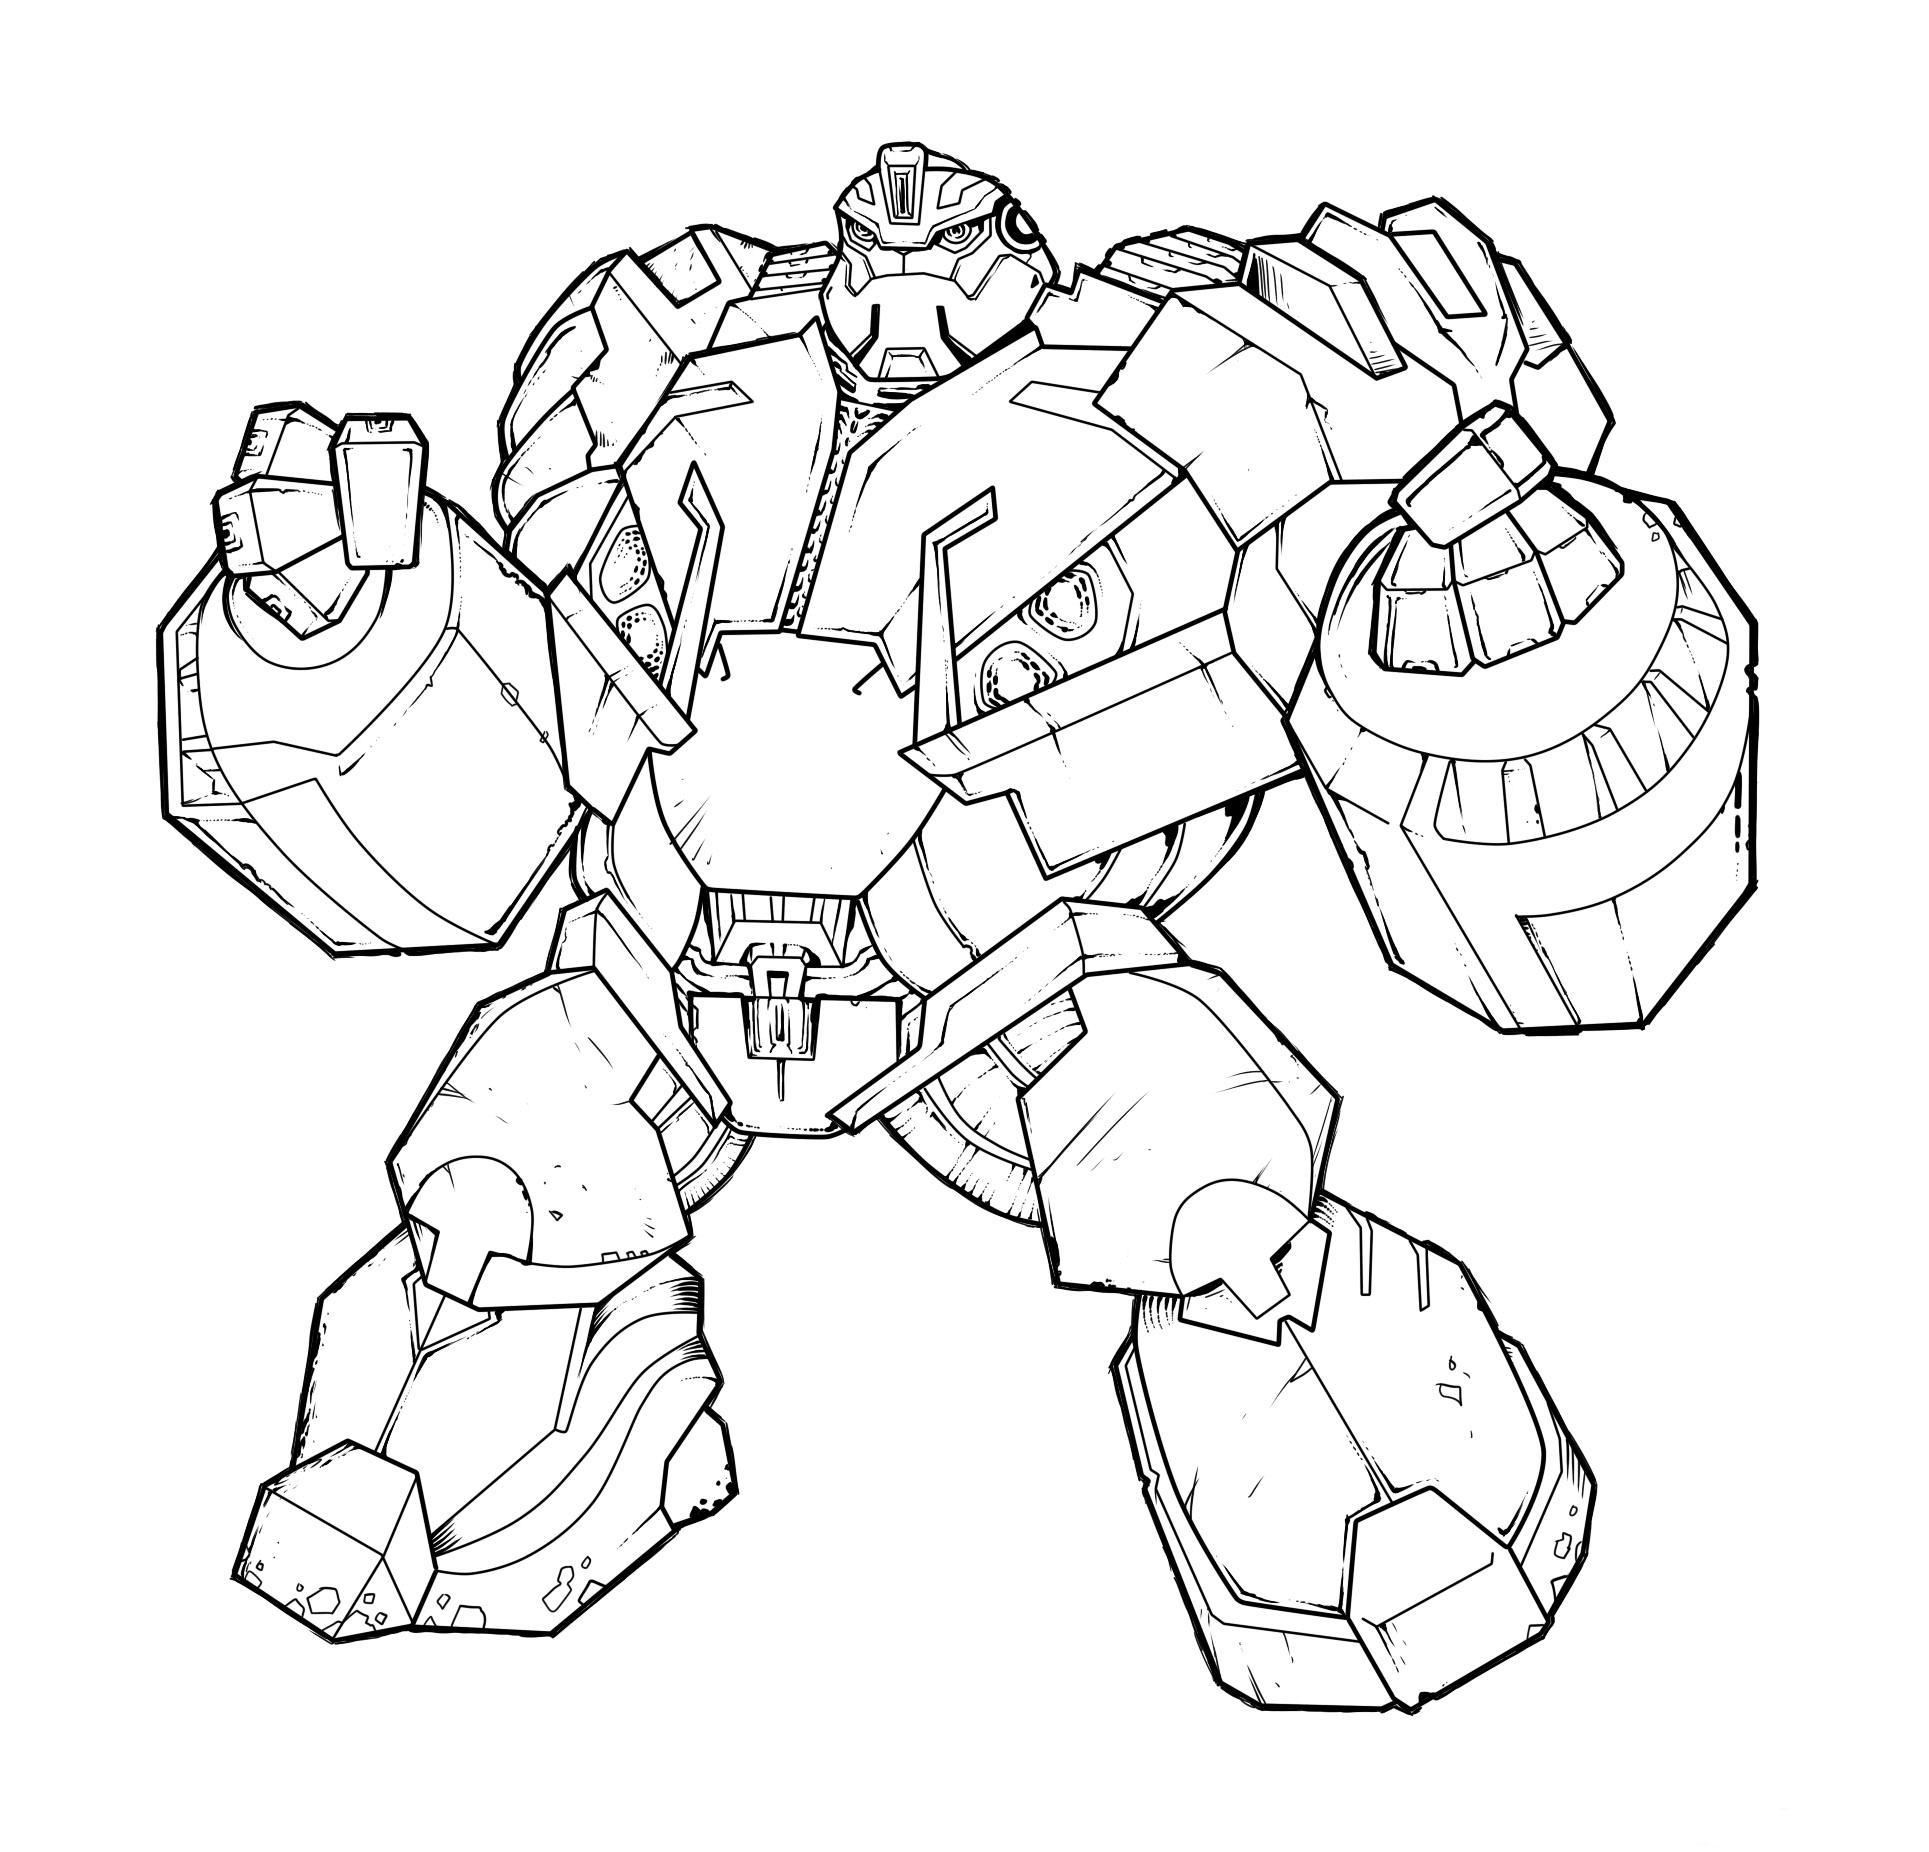 Coloring Pages For Kids Transformers At Getdrawings Com Free For